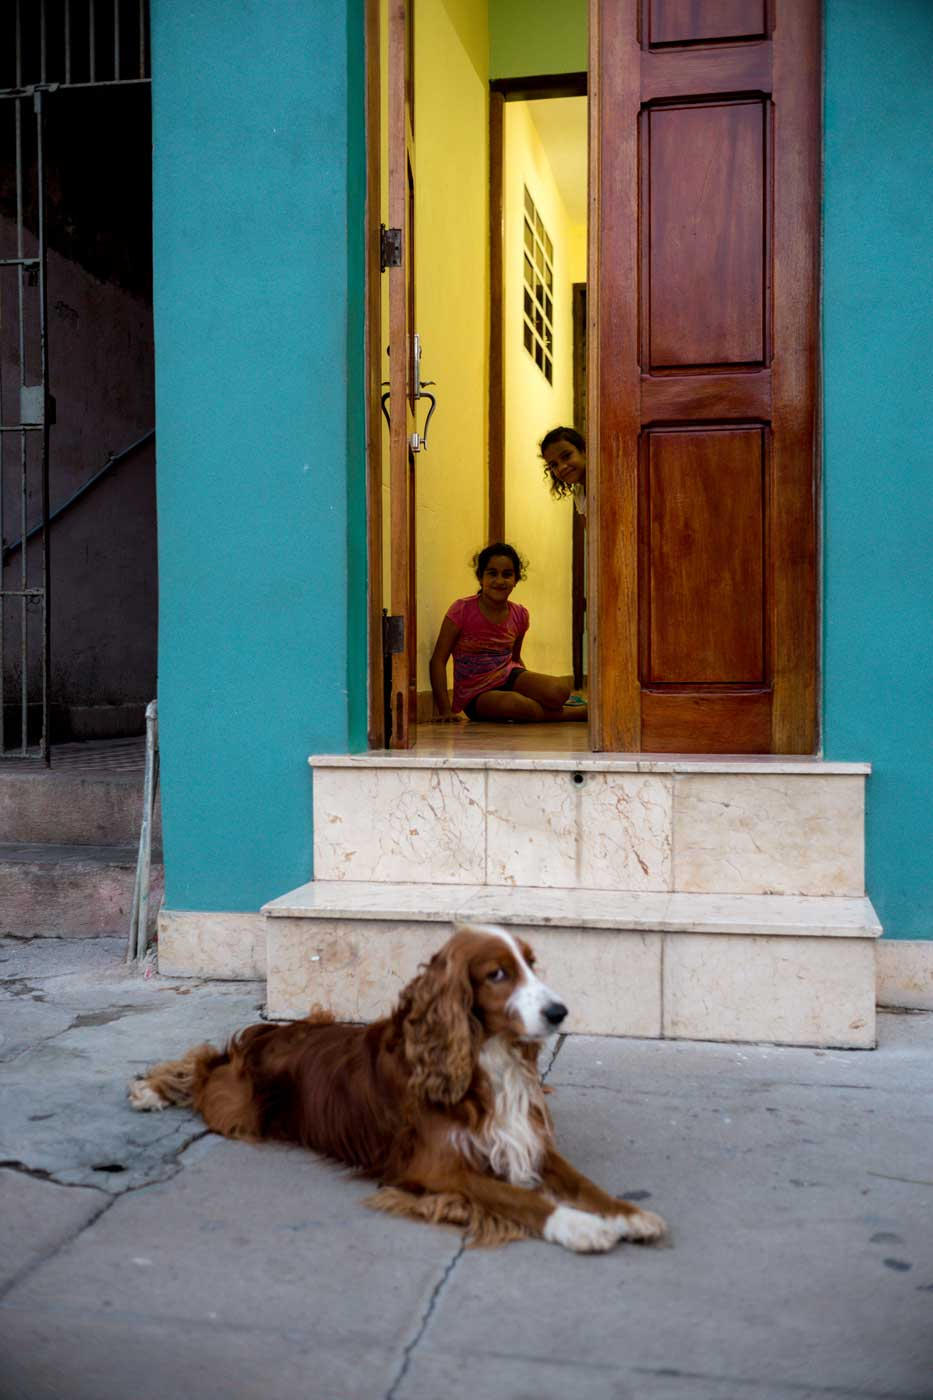 travel-cuba-cienfuegos-leica-m10-rangefinder-35mm-f2-summicron-iv-pre-a-trip-dog-gave-me-a-look